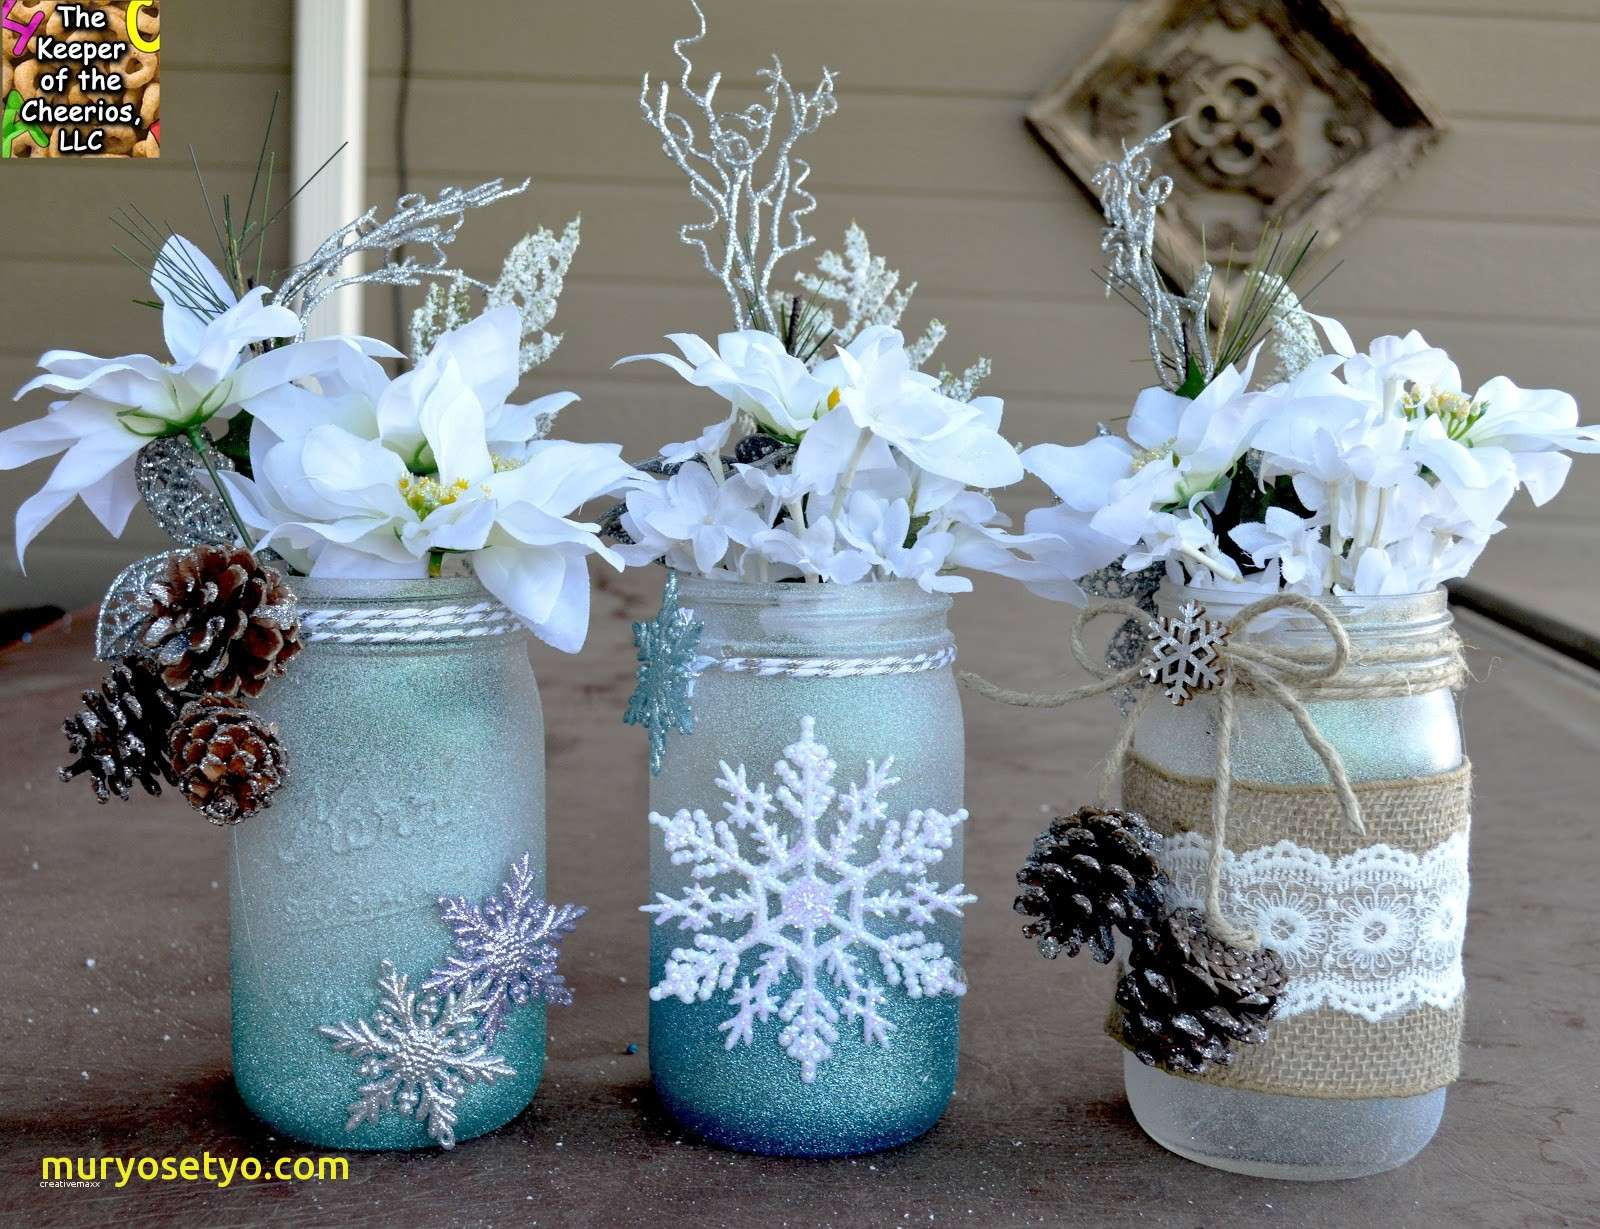 Best ideas about January Crafts For Adults . Save or Pin Easy winter crafts for adults awesome fresh january craft Now.